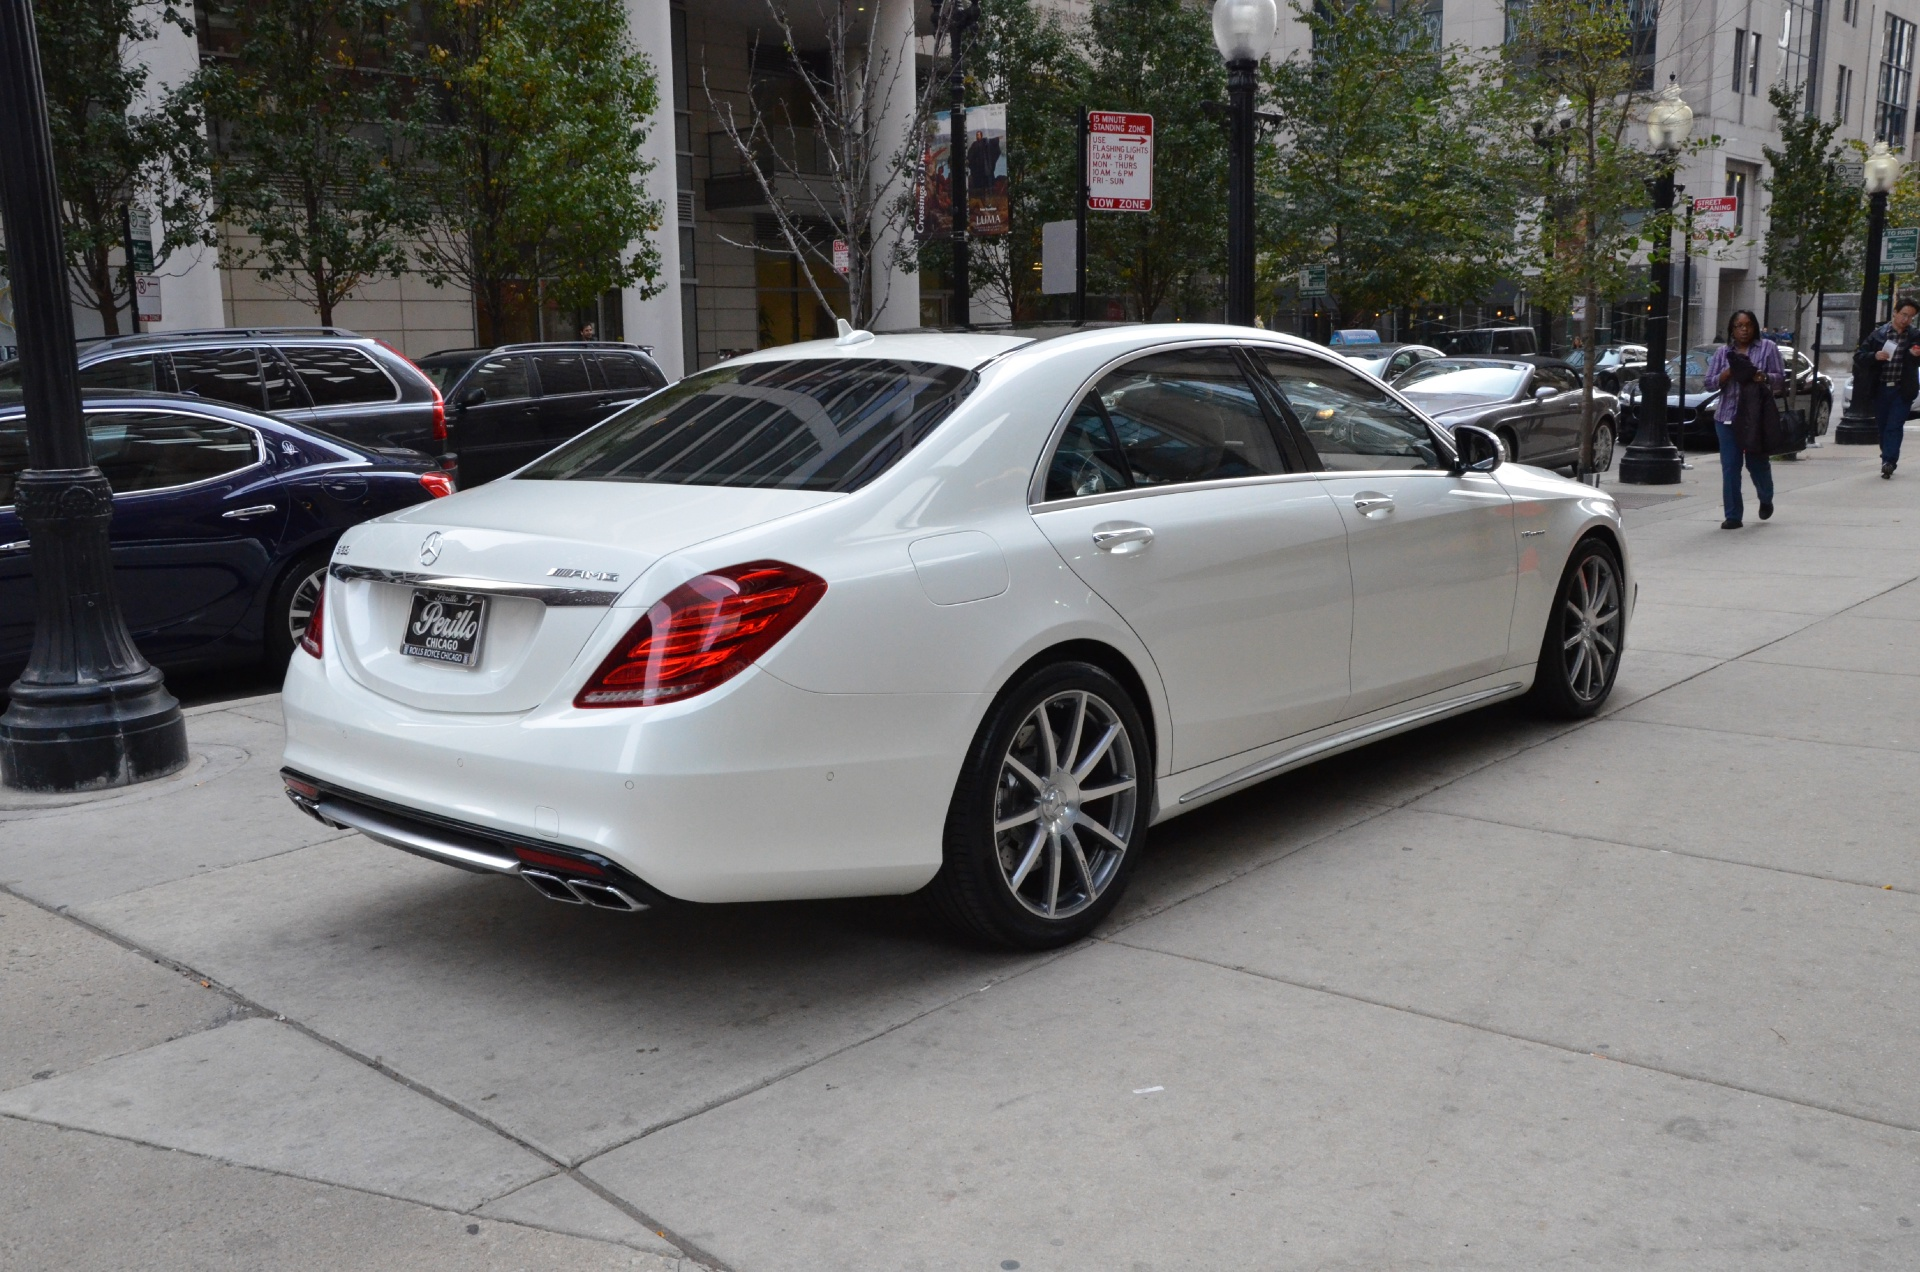 2015 mercedes benz s class s63 amg stock gc1566 for sale for 2015 mercedes benz s63 amg price